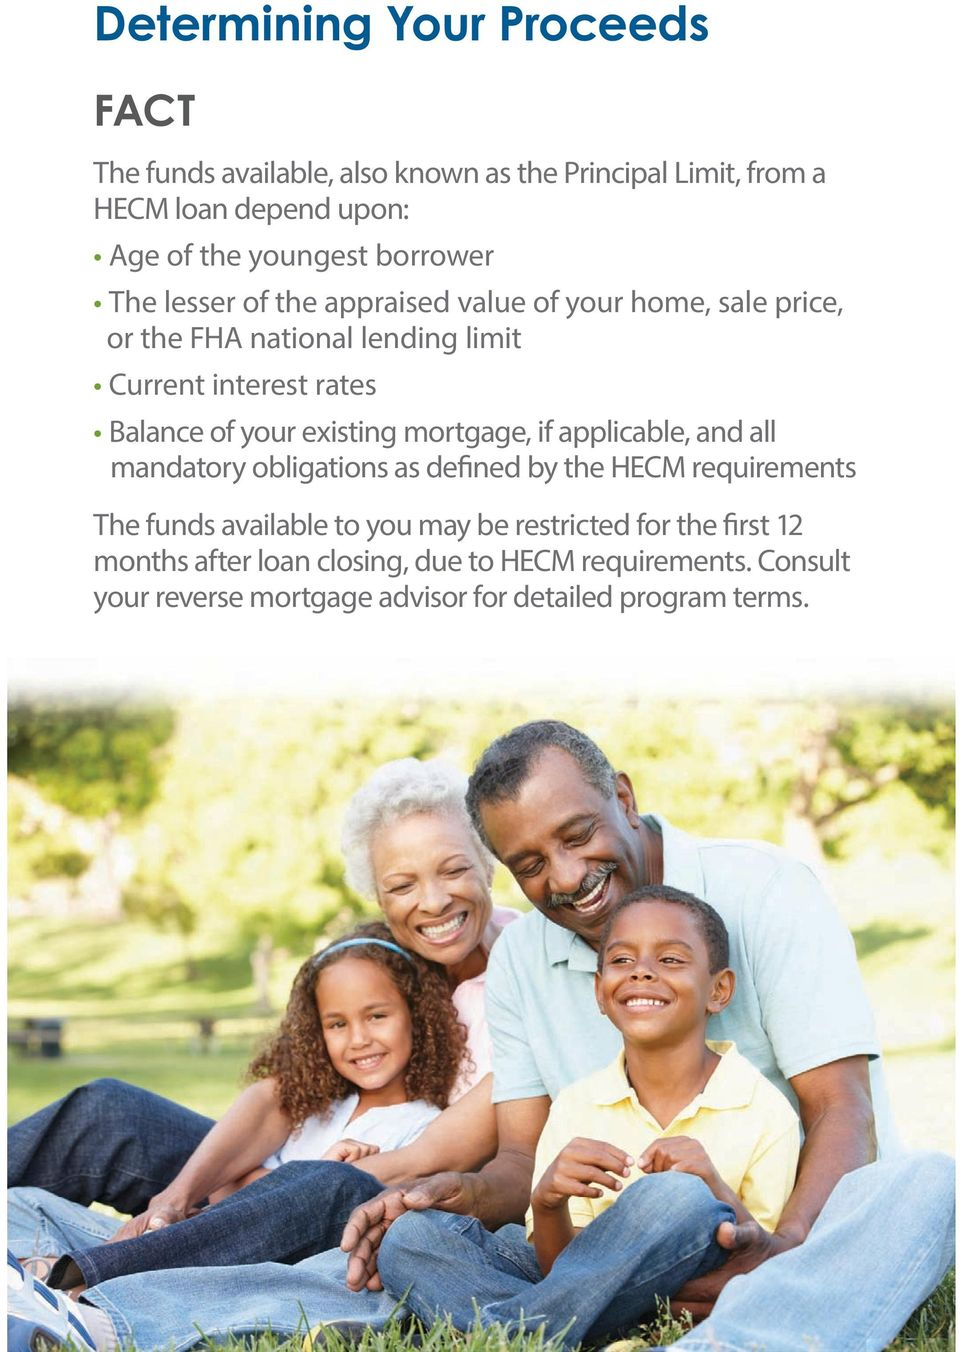 your existing mortgage, if applicable, and all mandatory obligations as defined by the HECM requirements The funds available to you may be